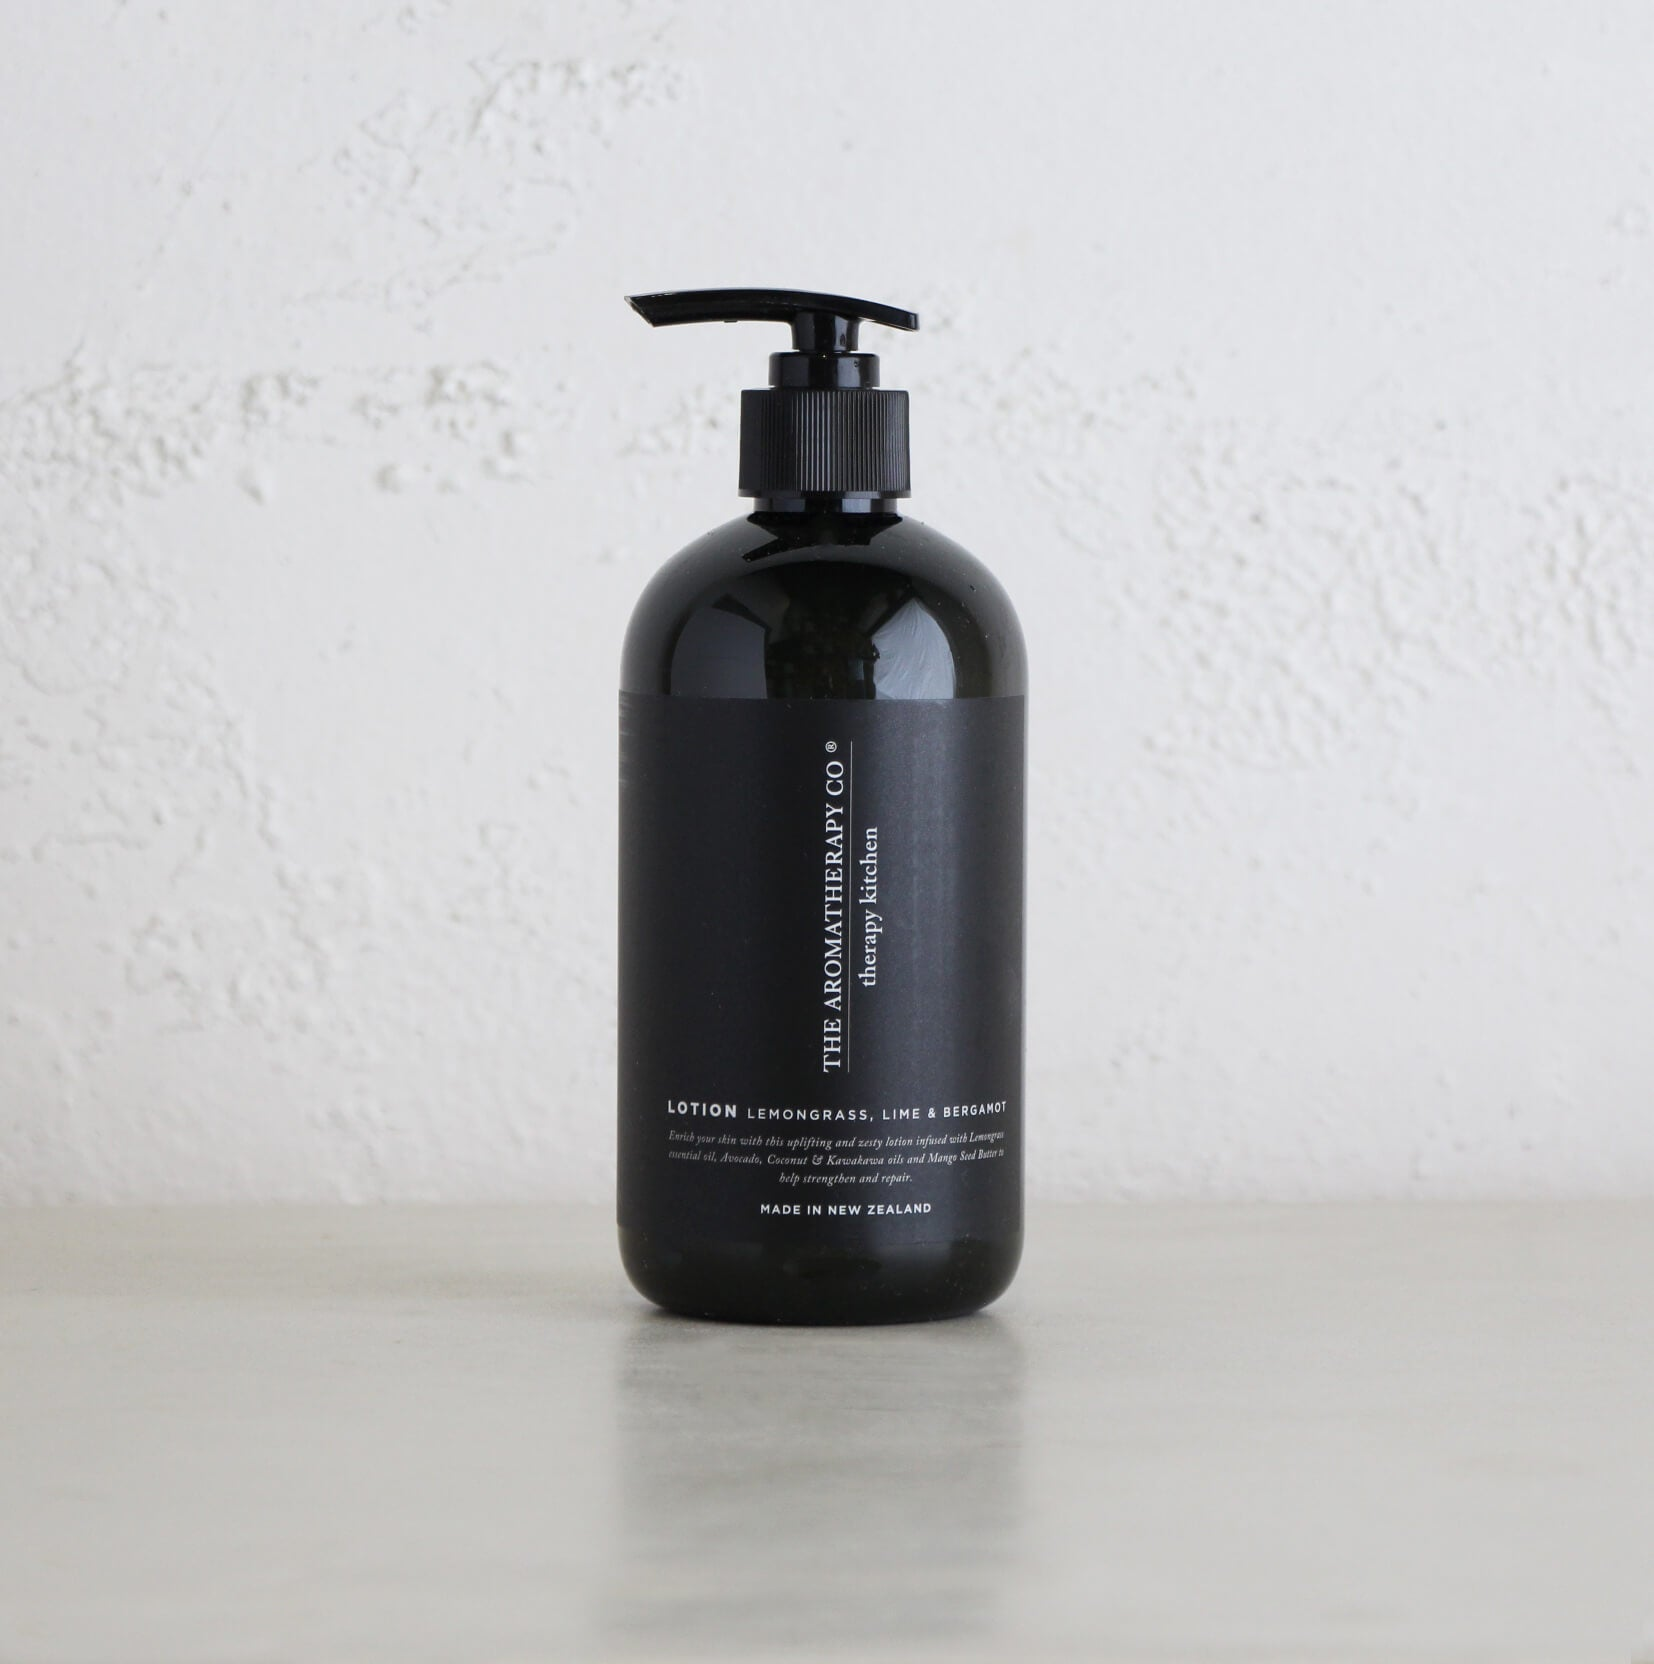 THERAPY KITCHEN HAND + BODY LOTION  |  LEMONGRASS, LIME & BERGAMOT | AROMATHERAPY CO NEW ZEALAND